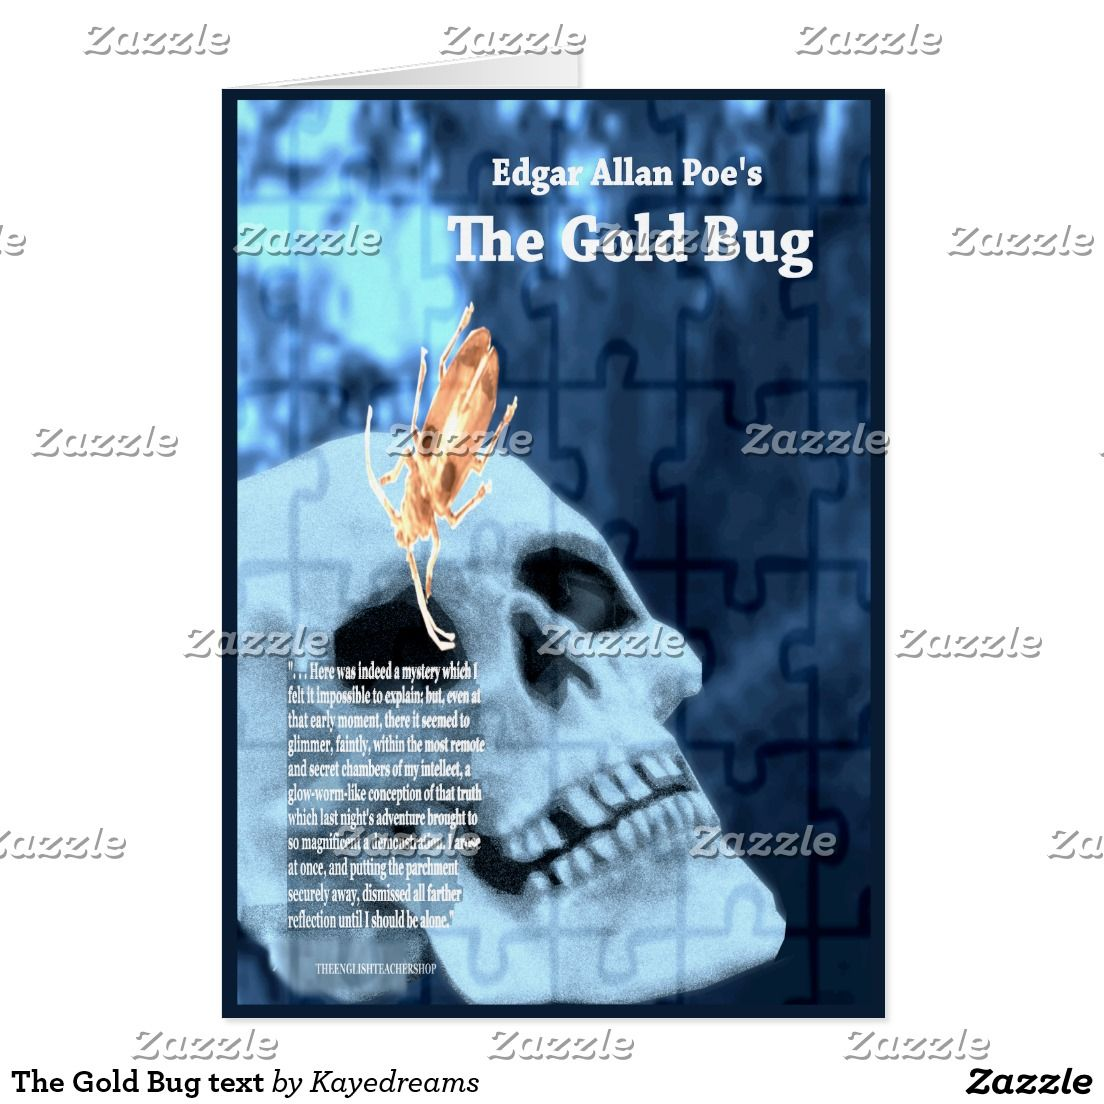 The Gold Bug text